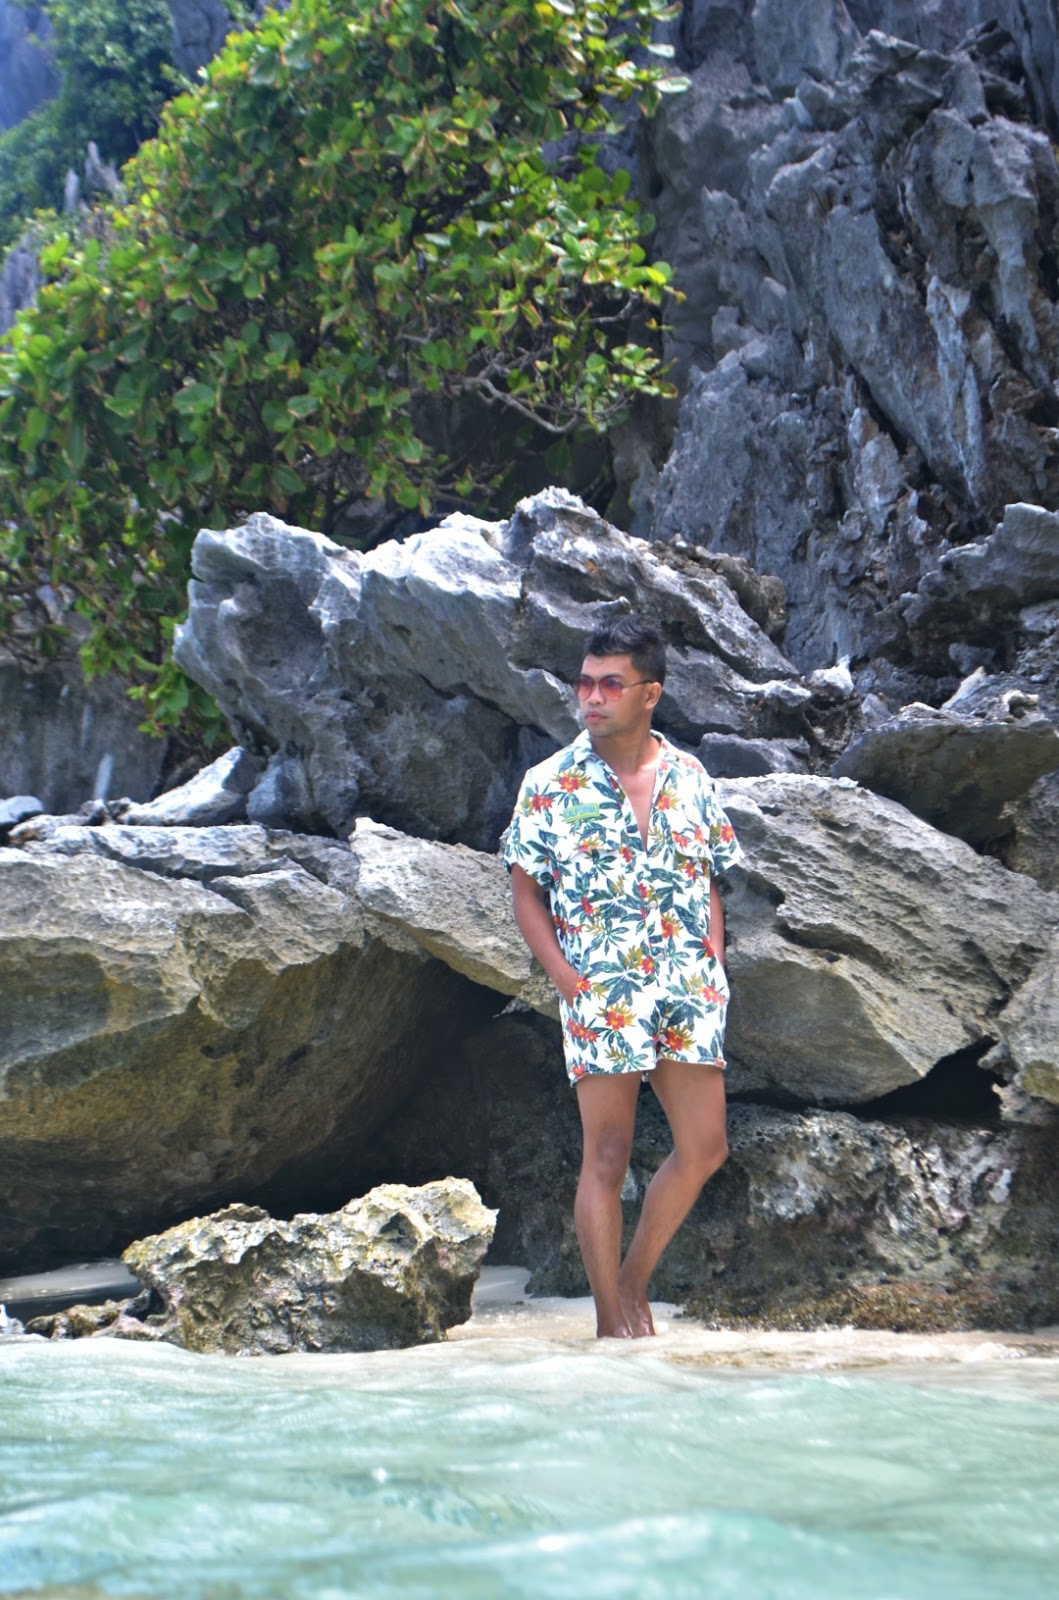 FASHION-CEBU-BLOGGER-ALMOSTABLOGGER-MEN.jpg